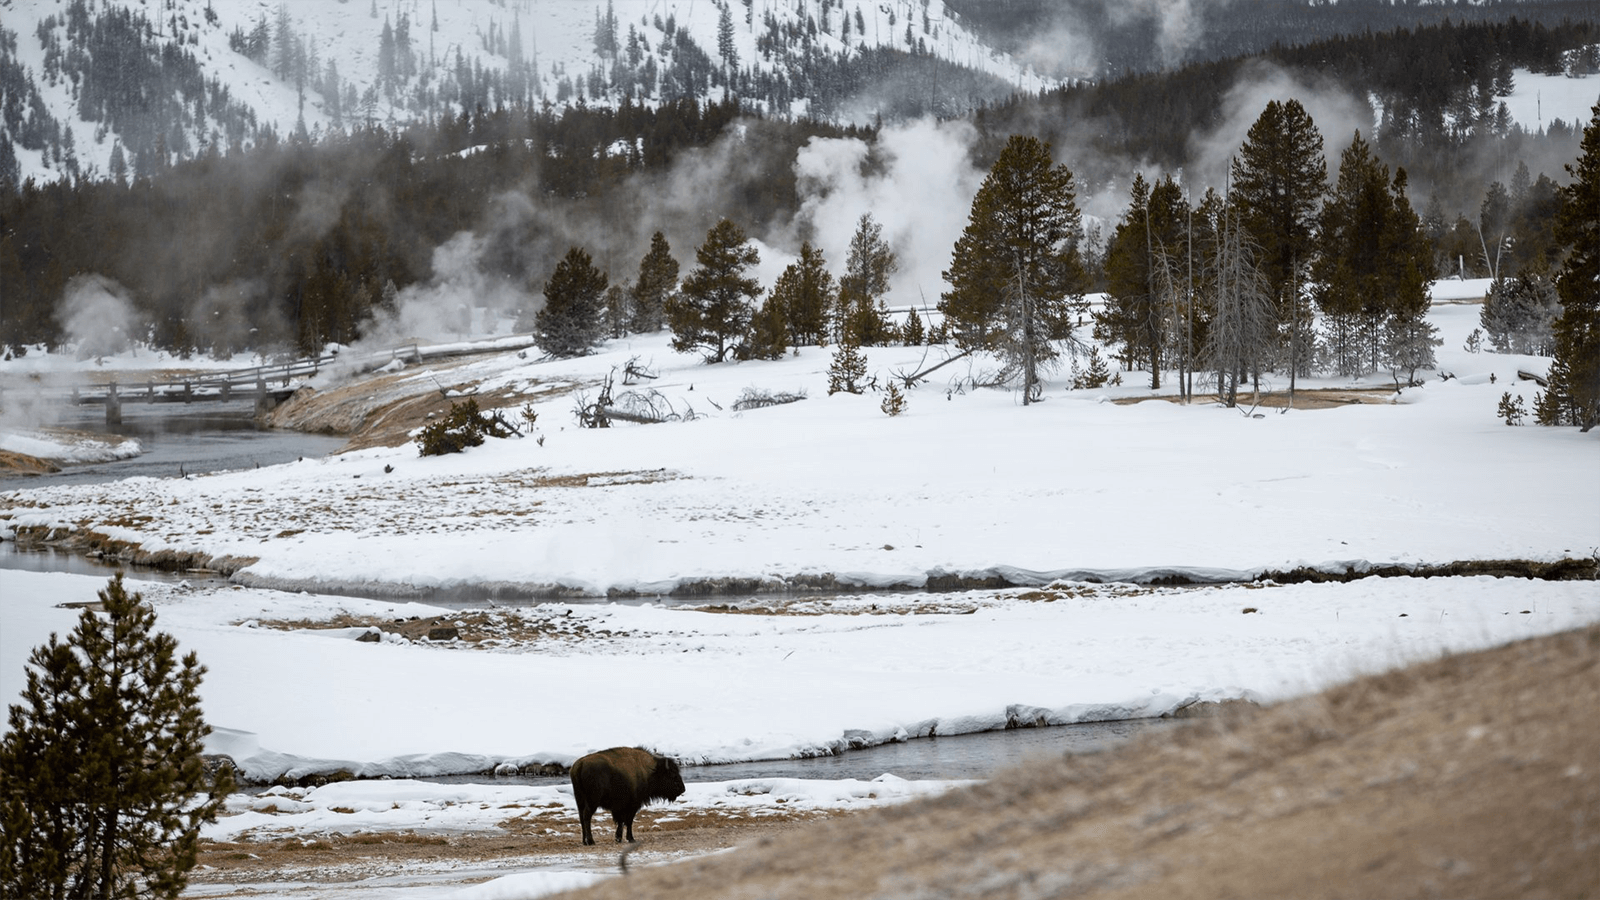 bison in front of geysers and fog